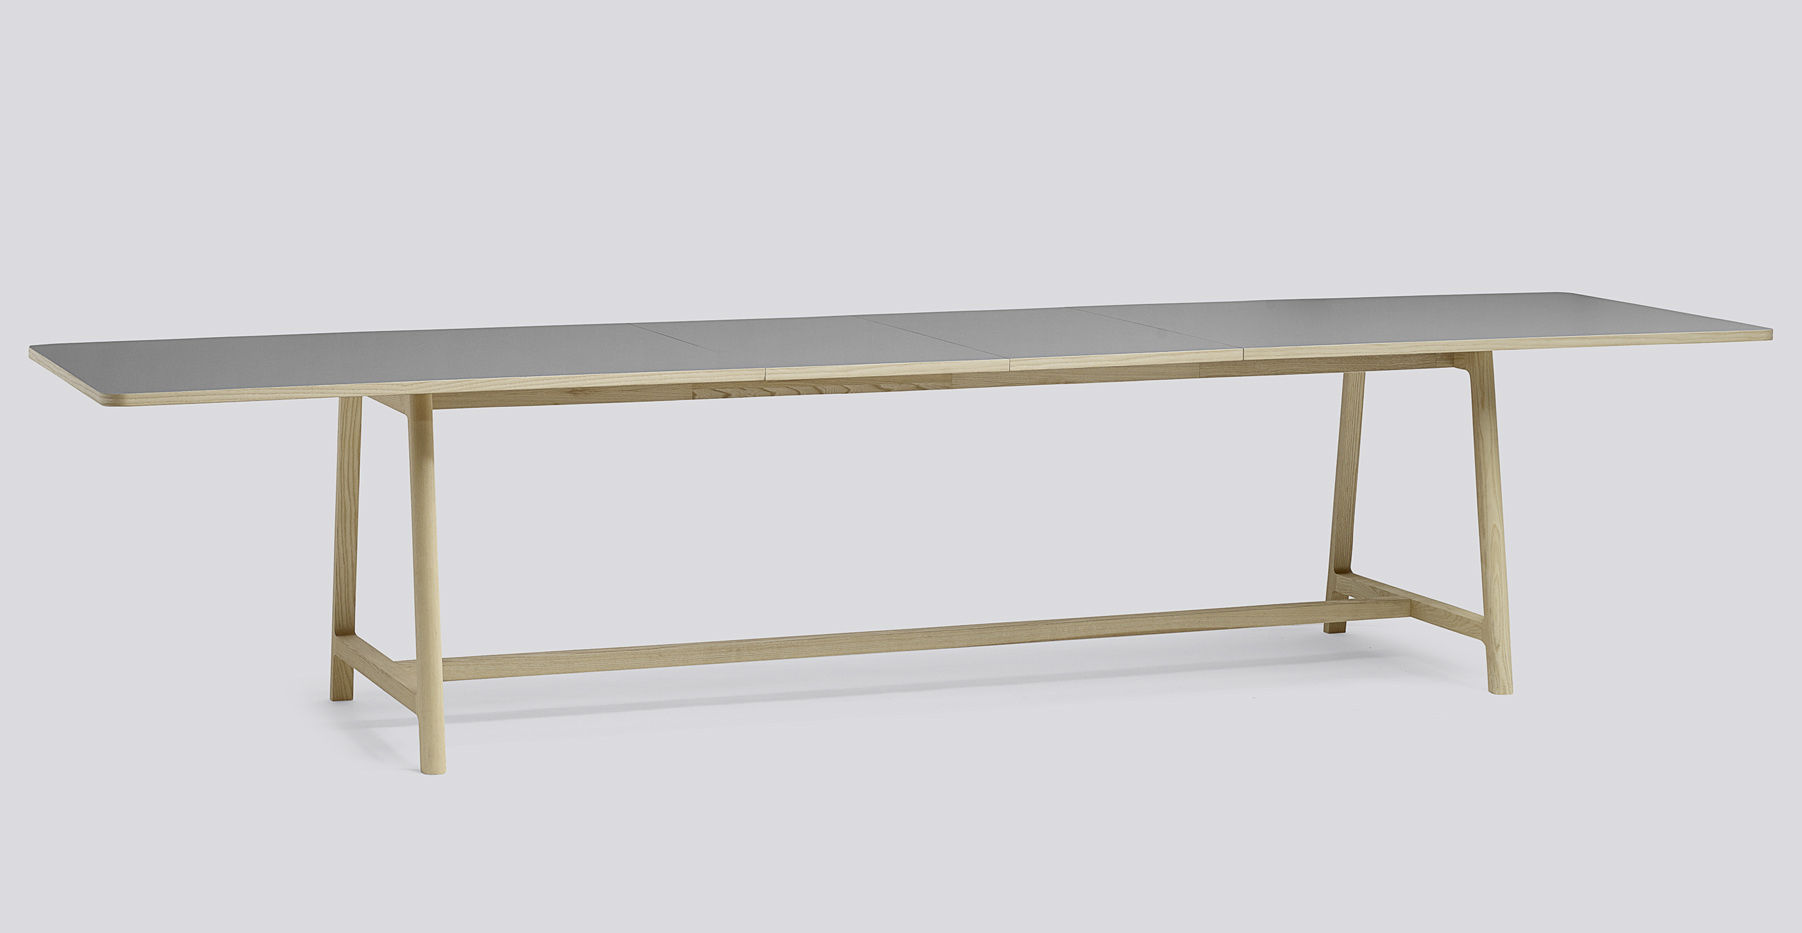 Frame extending table l 200 to 300 cm grey wood legs by hay for Table 300 cm